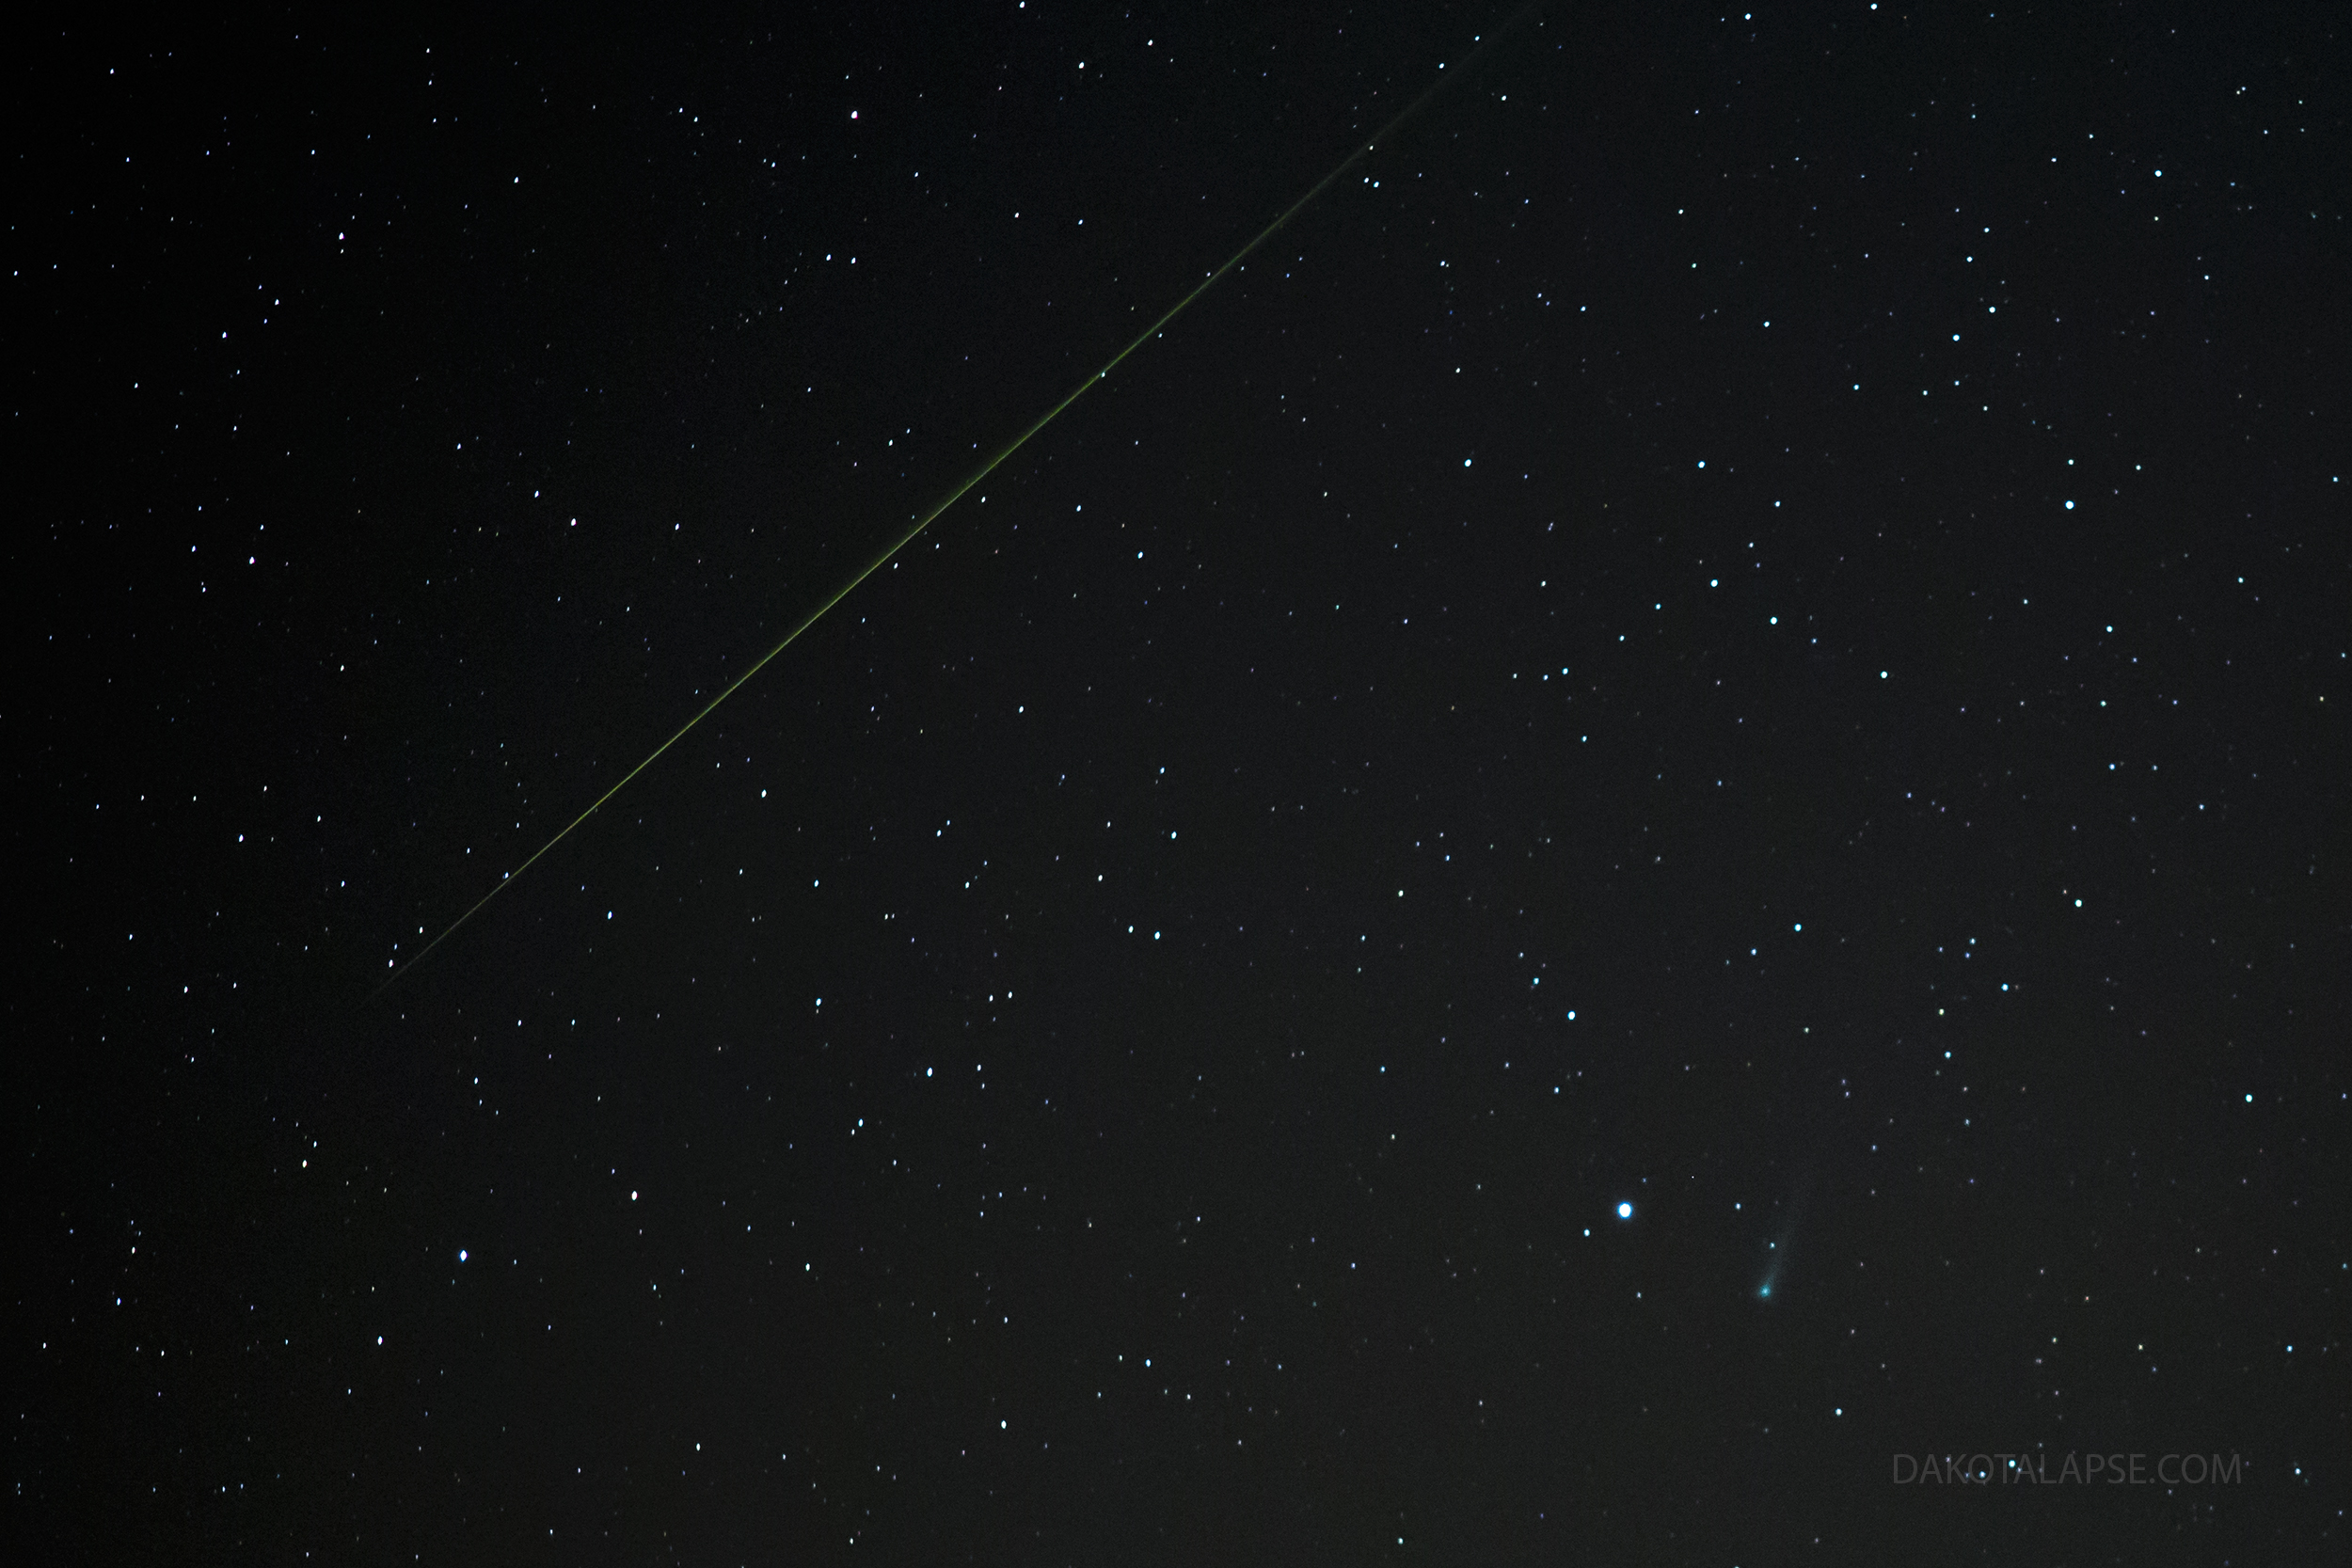 Comet Ison and Meteor 11-7-13